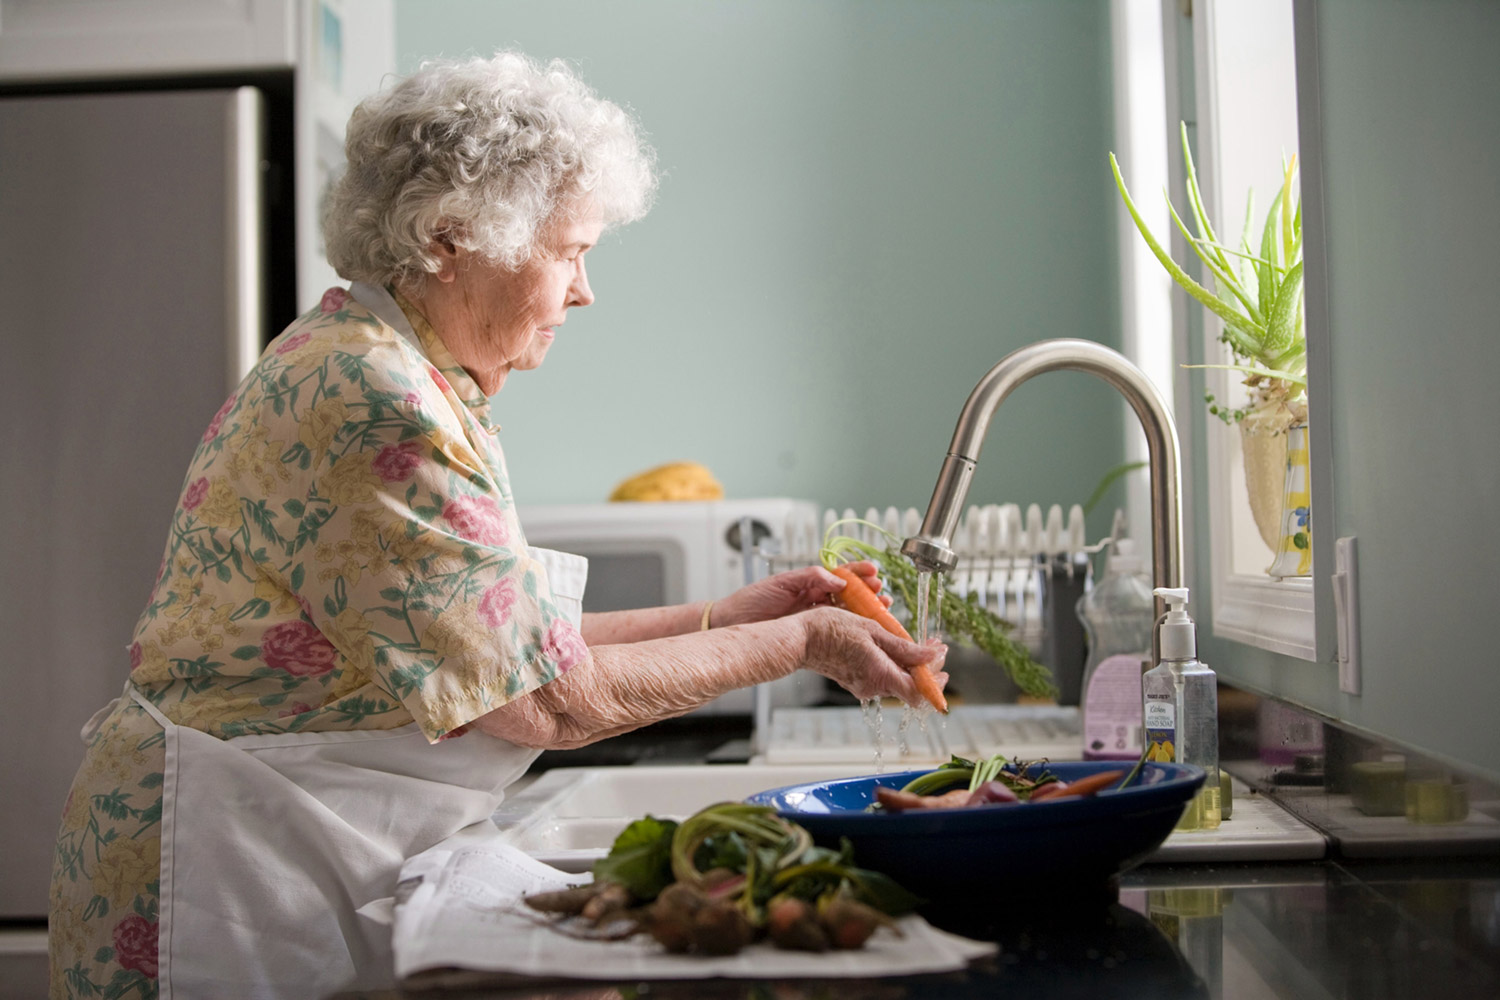 Older person washing food in a sink